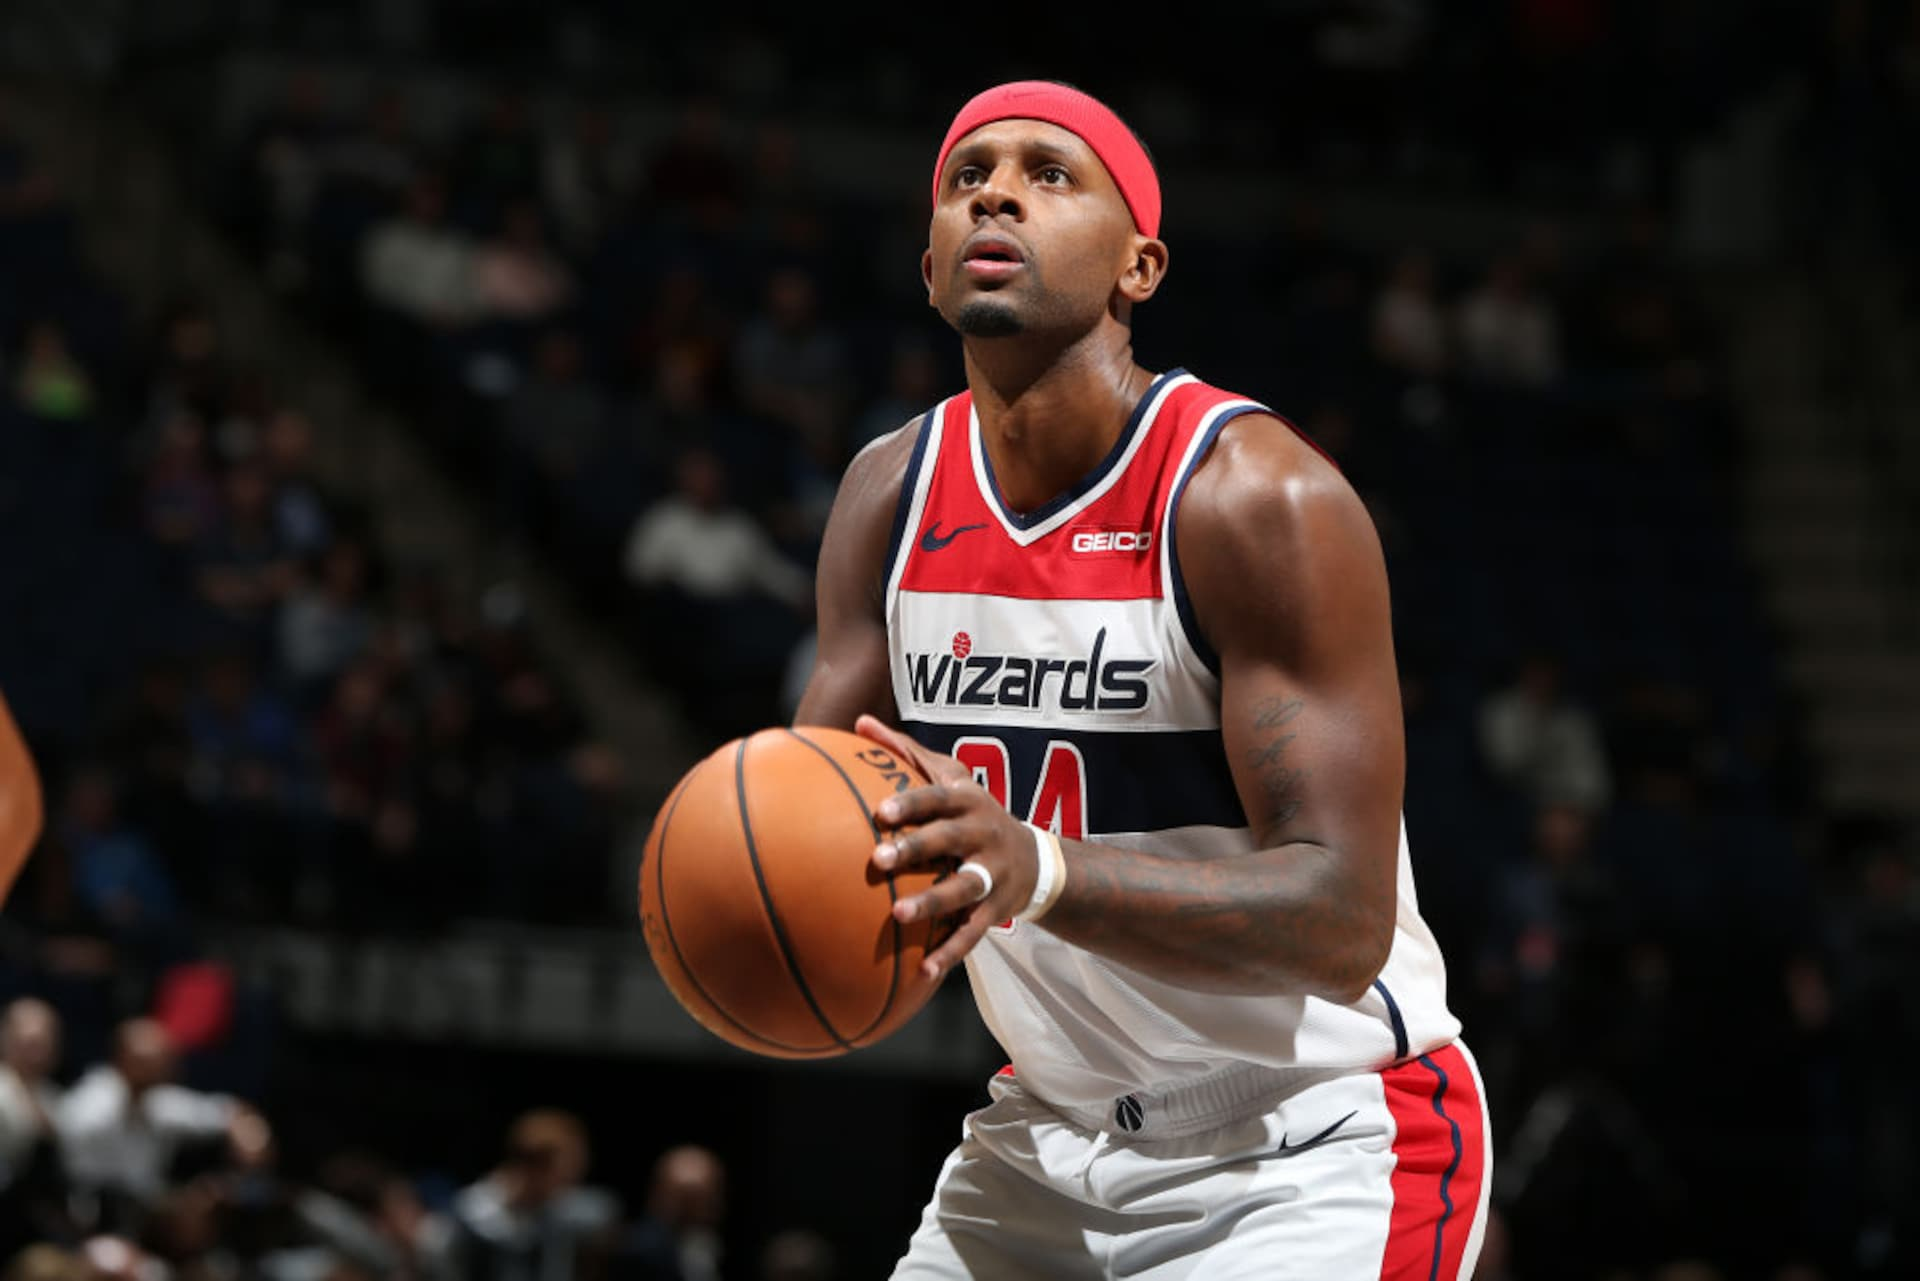 Wizards waive Miles, sign Pasecniks as Beal returns